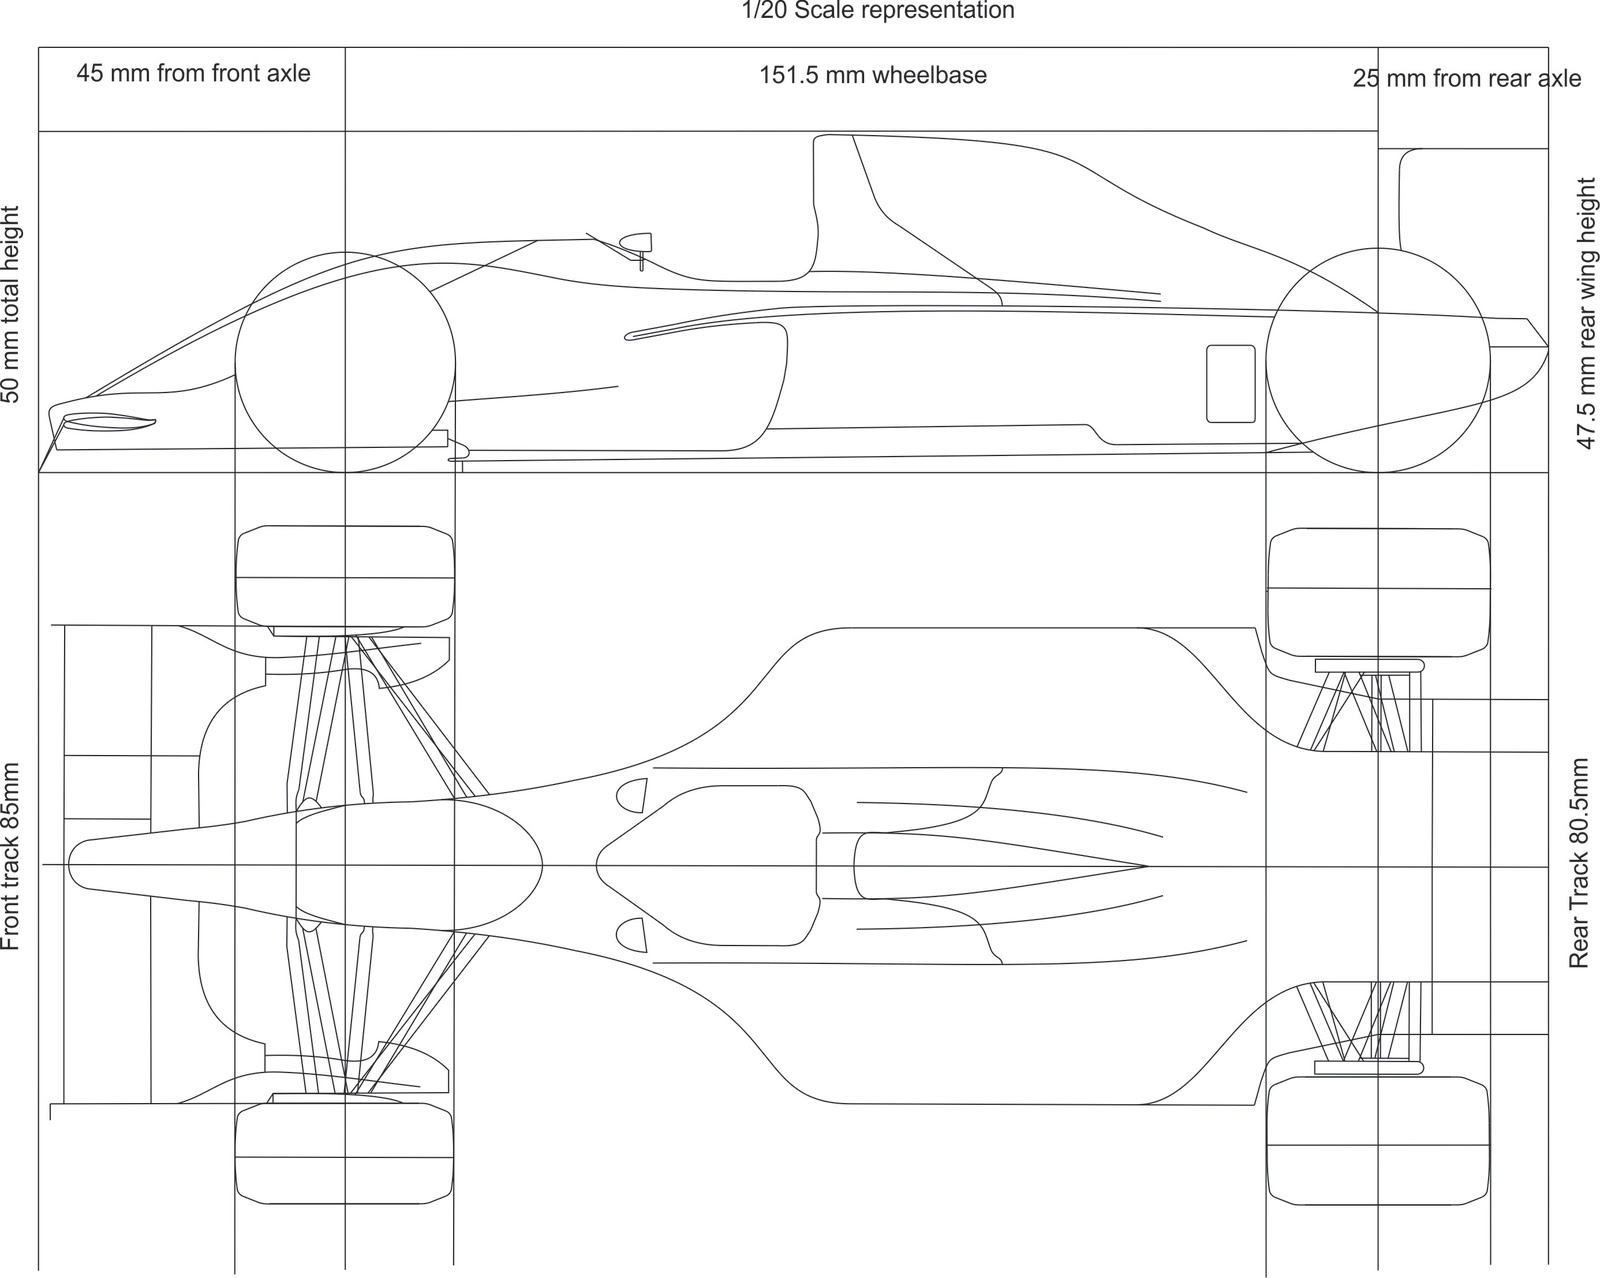 Scratchbuilding A 1  20 Scale F1 Replica  F1 Car Design In Catia V5